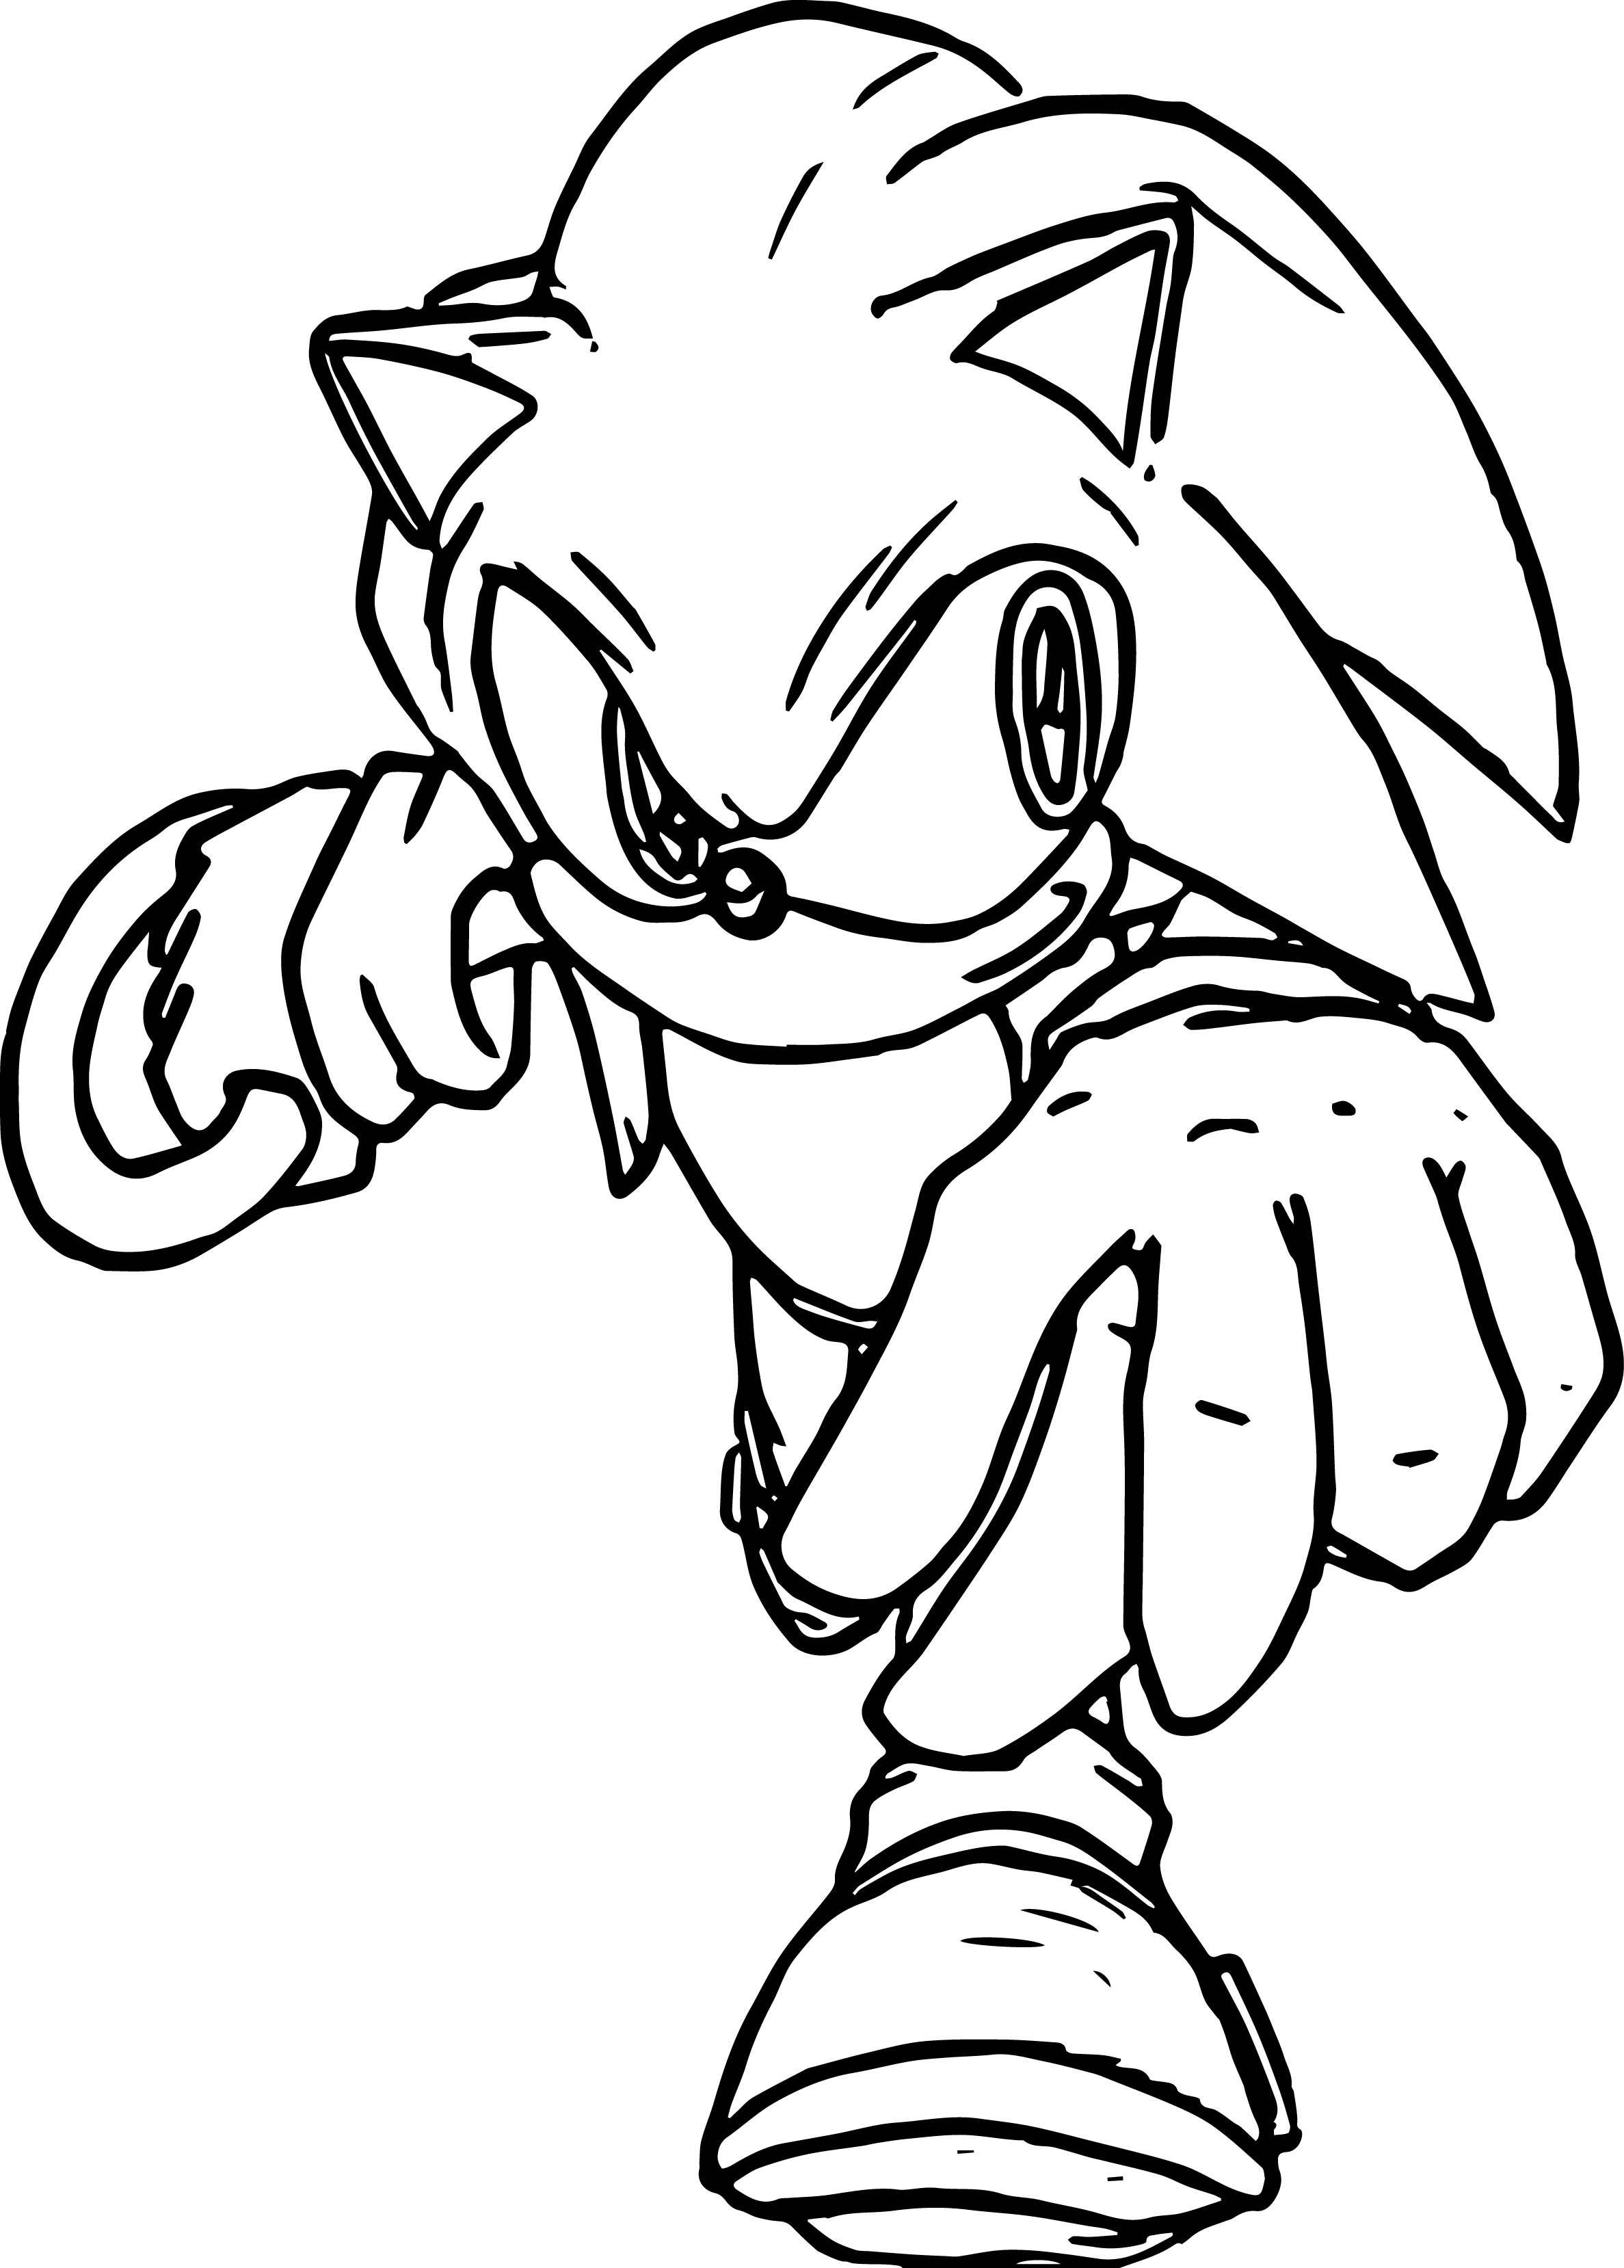 Sonic The Hedgehog Coloring Page WeColoringPage 250